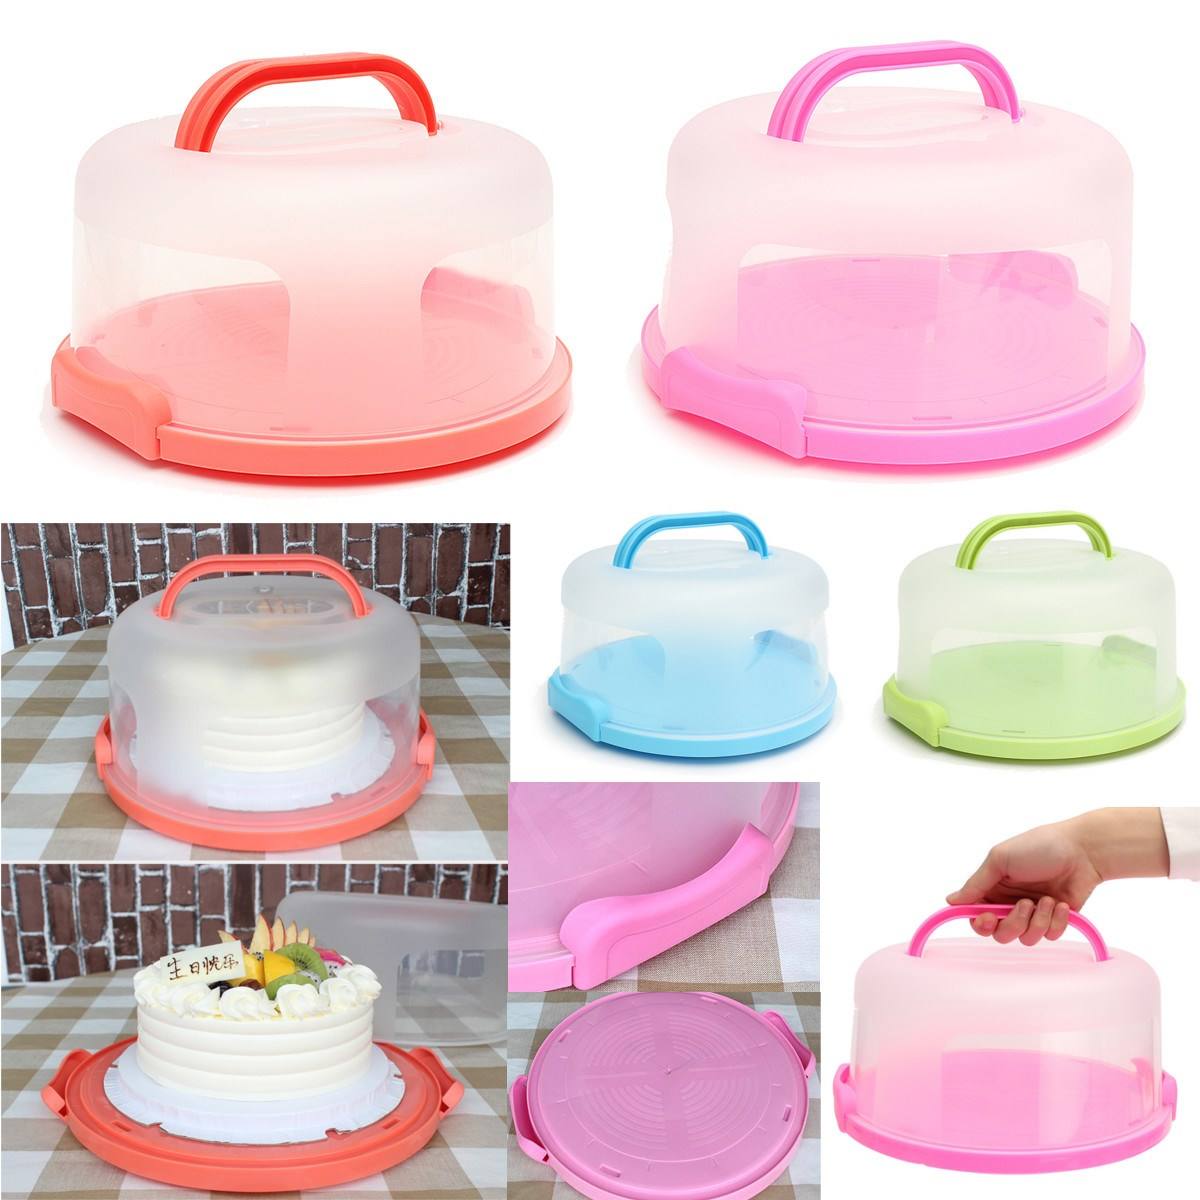 30X15cm Round Cake Carrier Handheld Plastic Pastry Storage Holder Dessert Container Cover Case Birthday Wedding Party Supplies-in Cake Decorating Supplies ...  sc 1 st  AliExpress.com & 30X15cm Round Cake Carrier Handheld Plastic Pastry Storage Holder ...